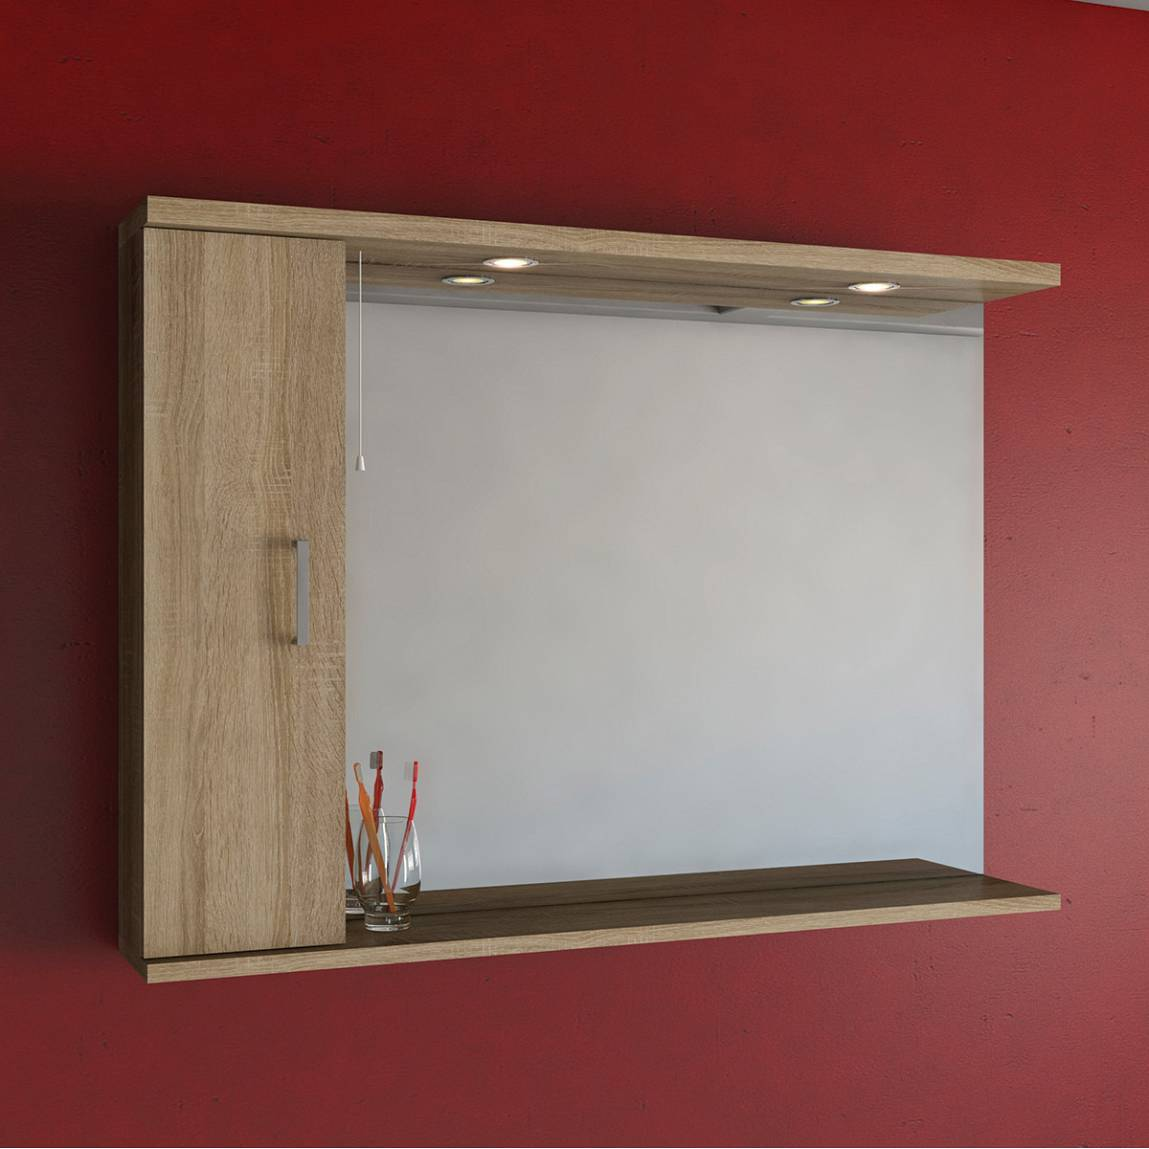 bathroom lighting advice. Sienna Oak 120 Mirror With Lights Bathroom Lighting Advice